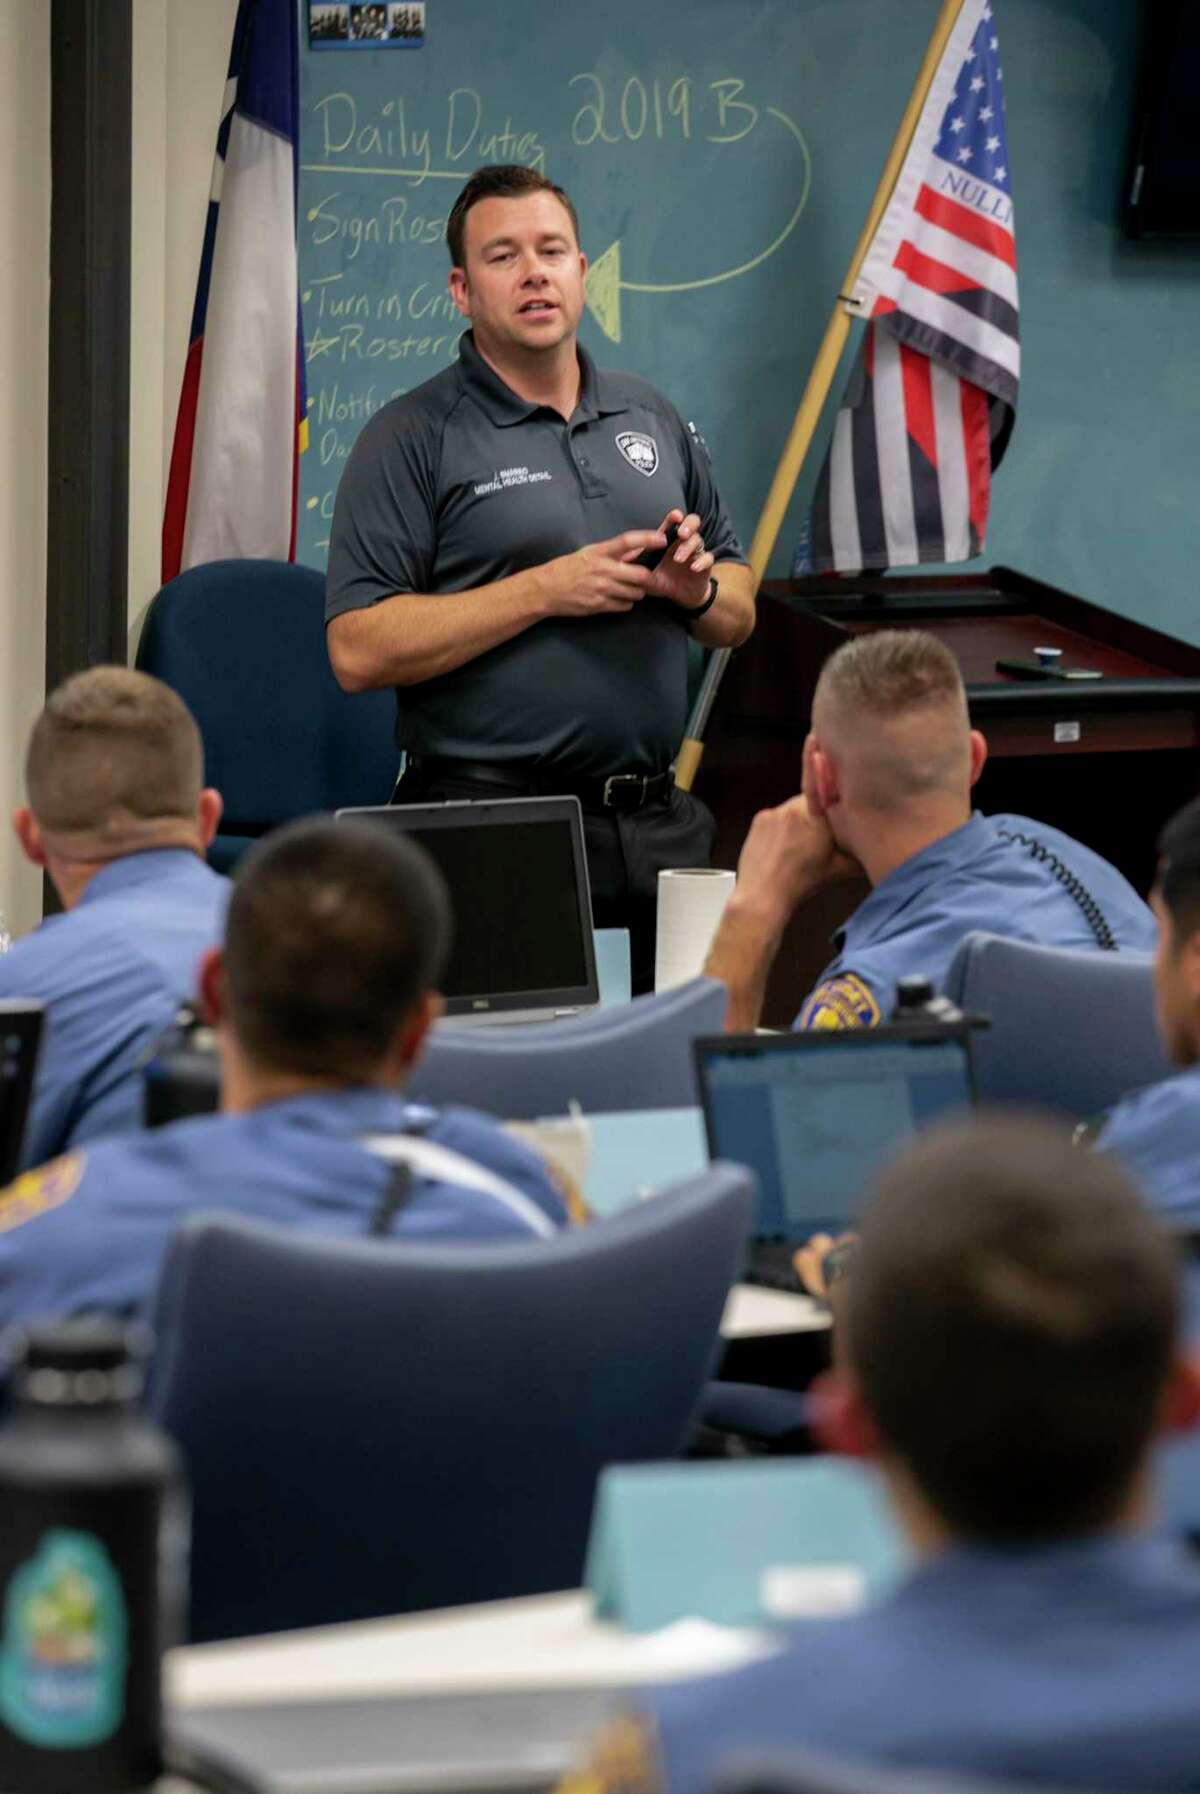 San Antonio Police Officer Joe Smarro talks with cadets during a week-long Crisis Intervention Training program at the San Antonio Police Training Academy. Smarro and Stevens are members of the department's Mental Health Unit.